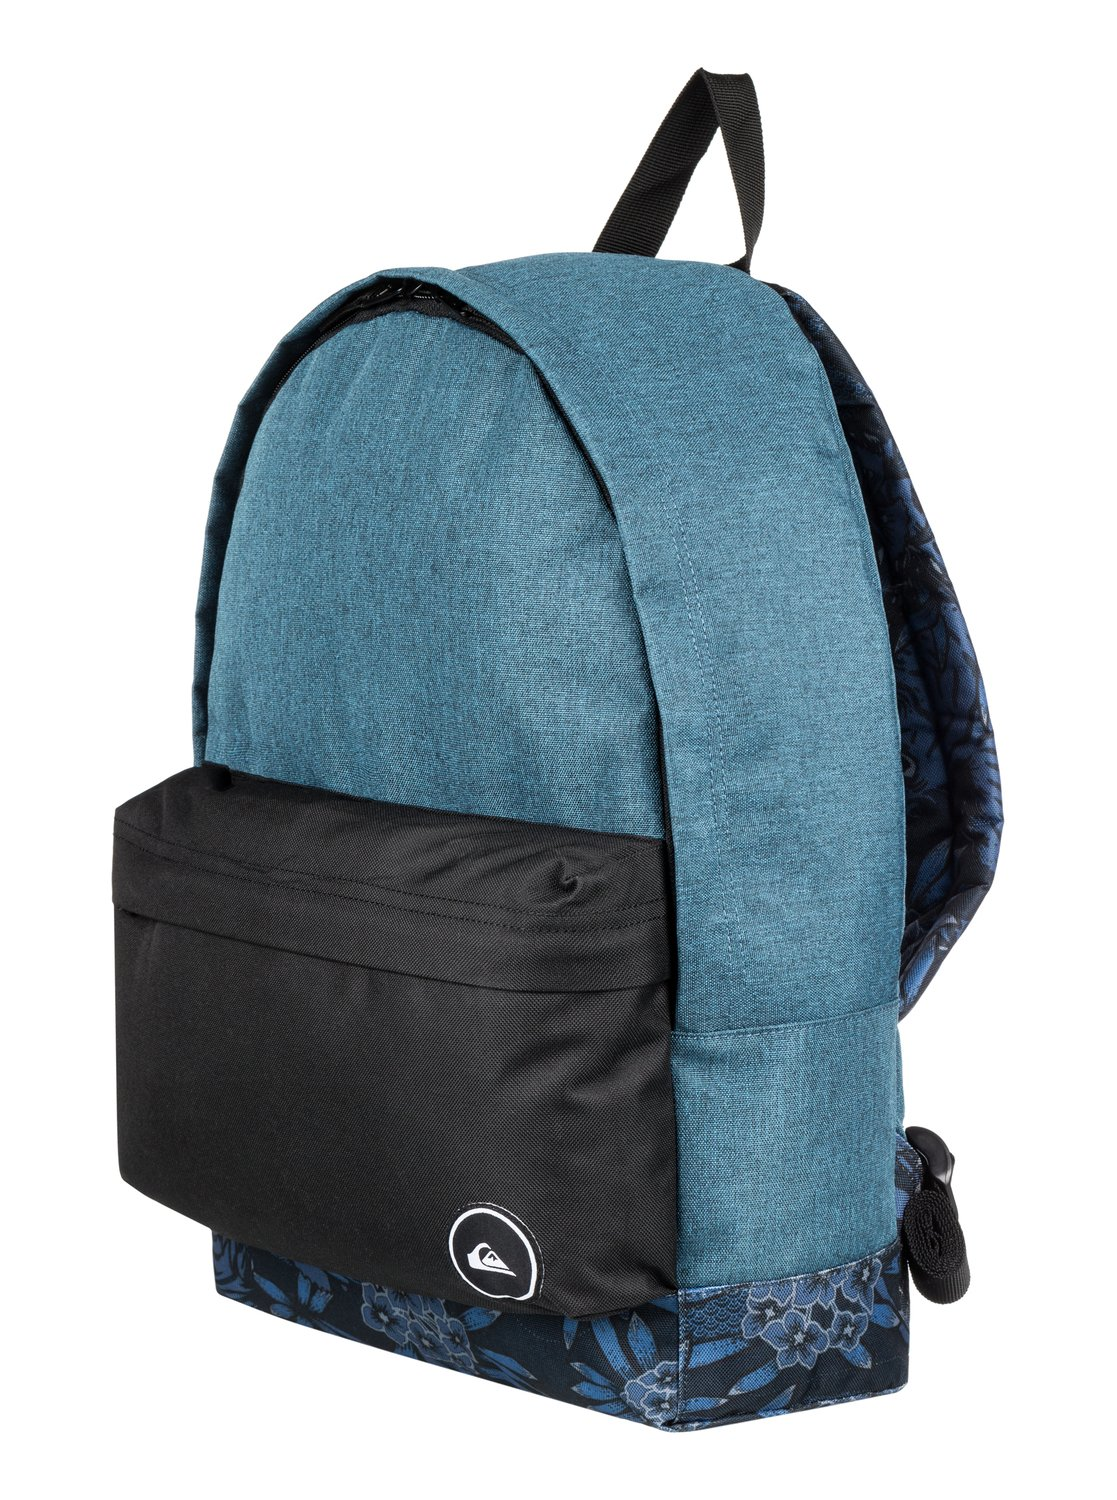 Quiksilver-Everyday-Poster-25L-Sac-a-dos-taille-moyenne-Homme miniature 13